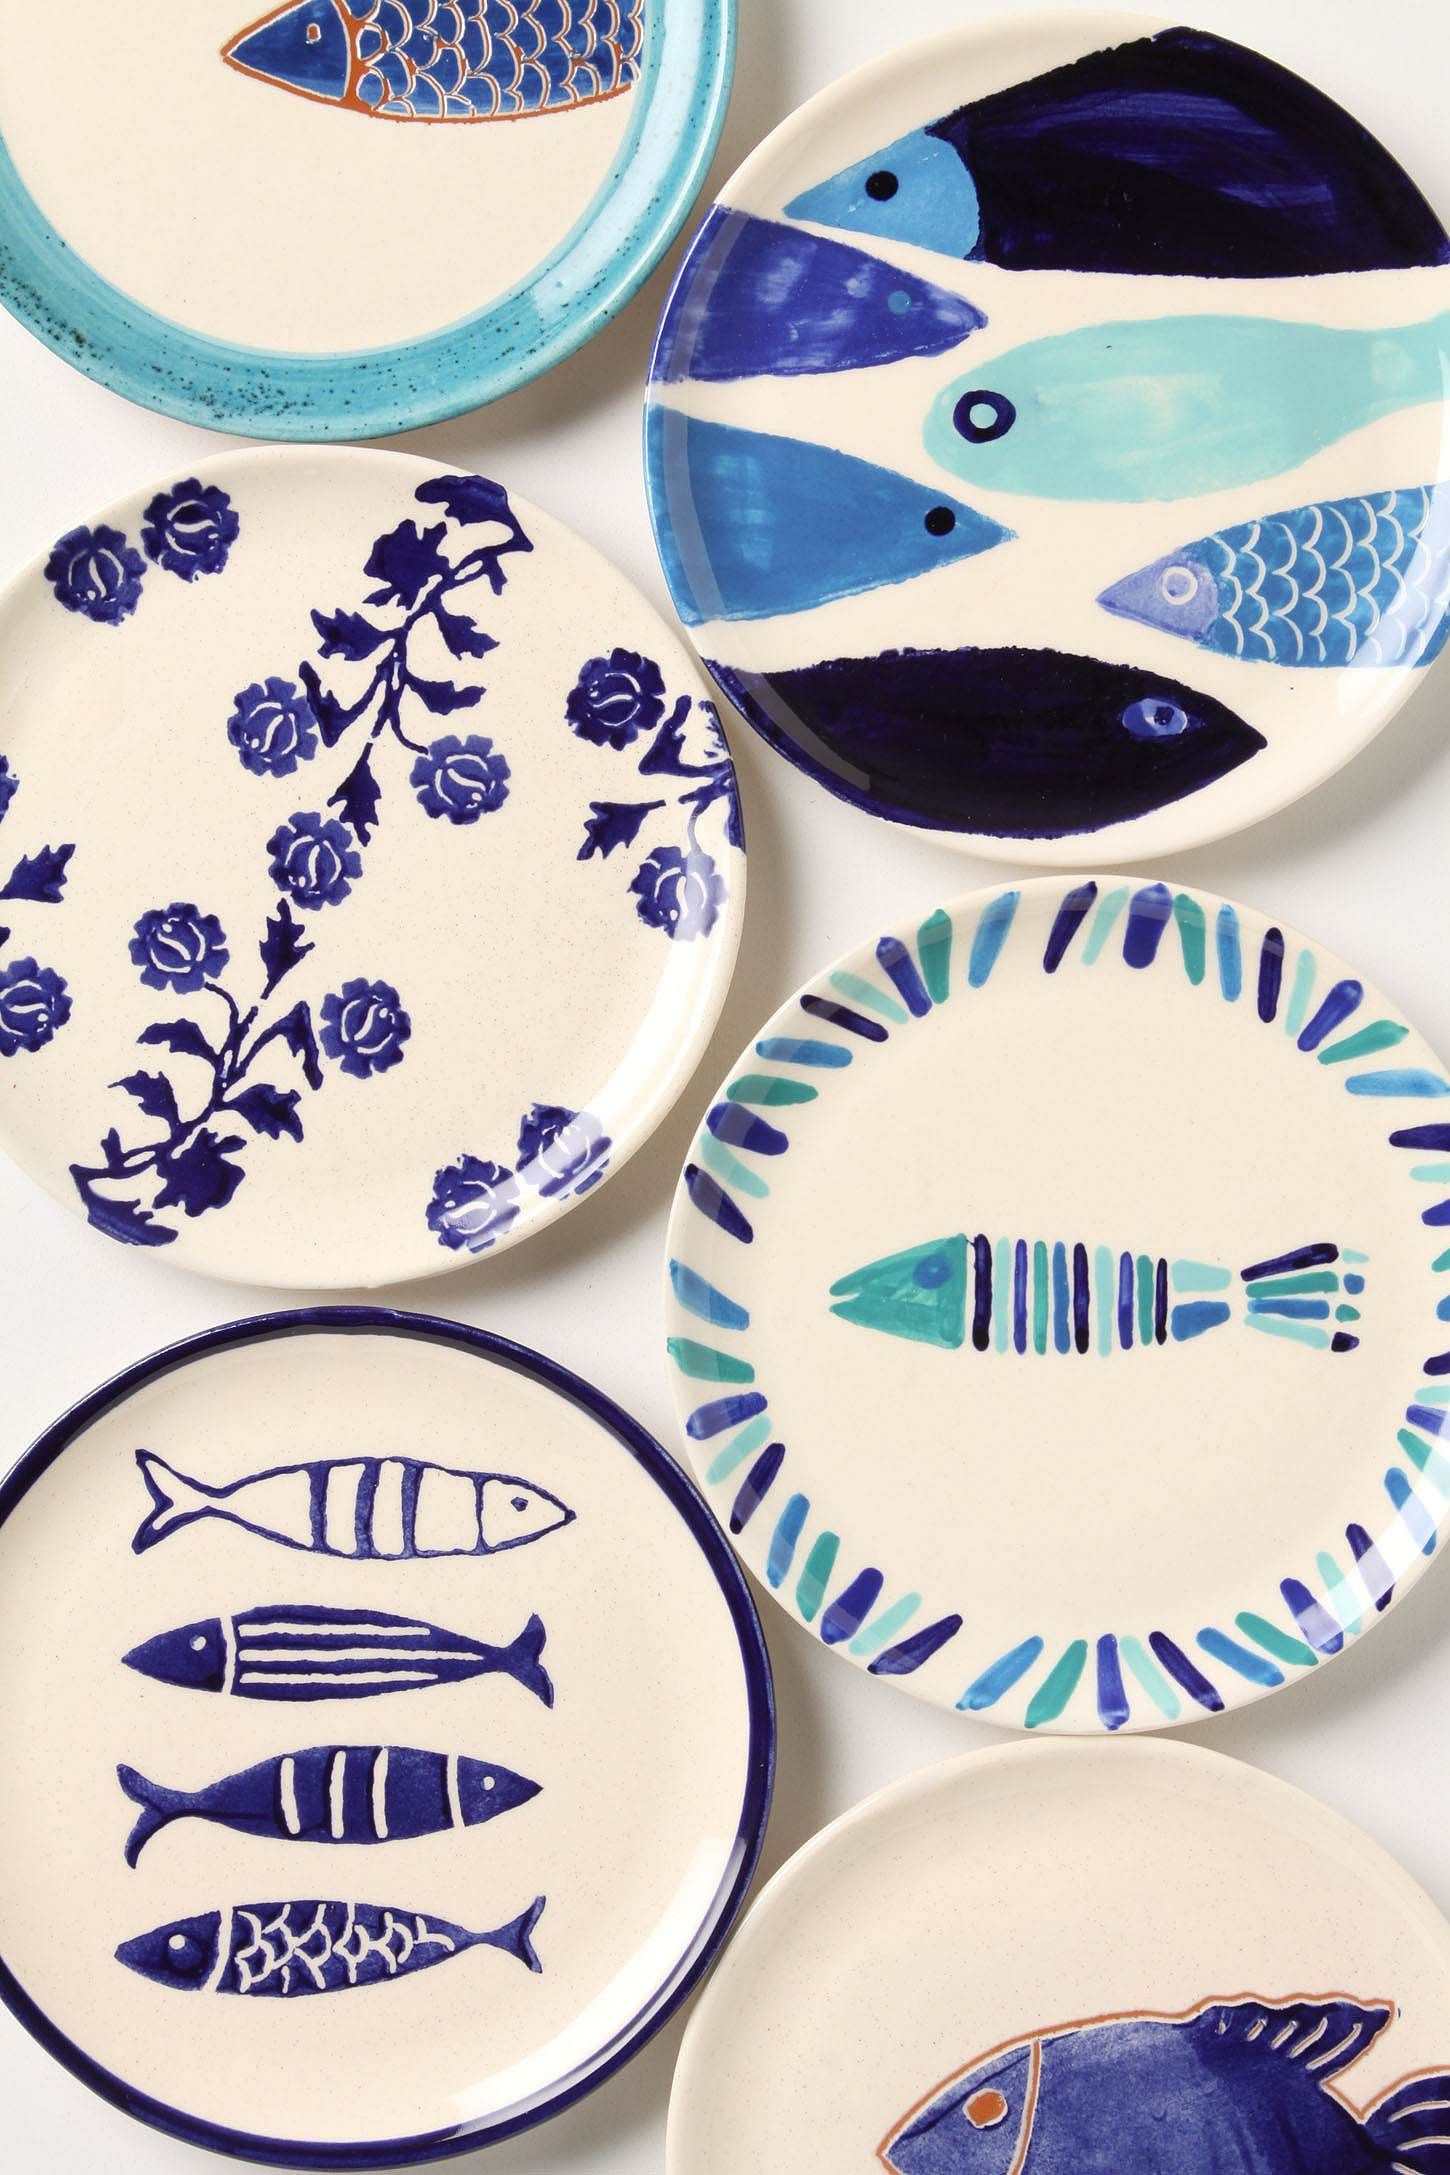 Vernazza Canape Plate Pottery Paint Your Own Pottery Ceramic Painting